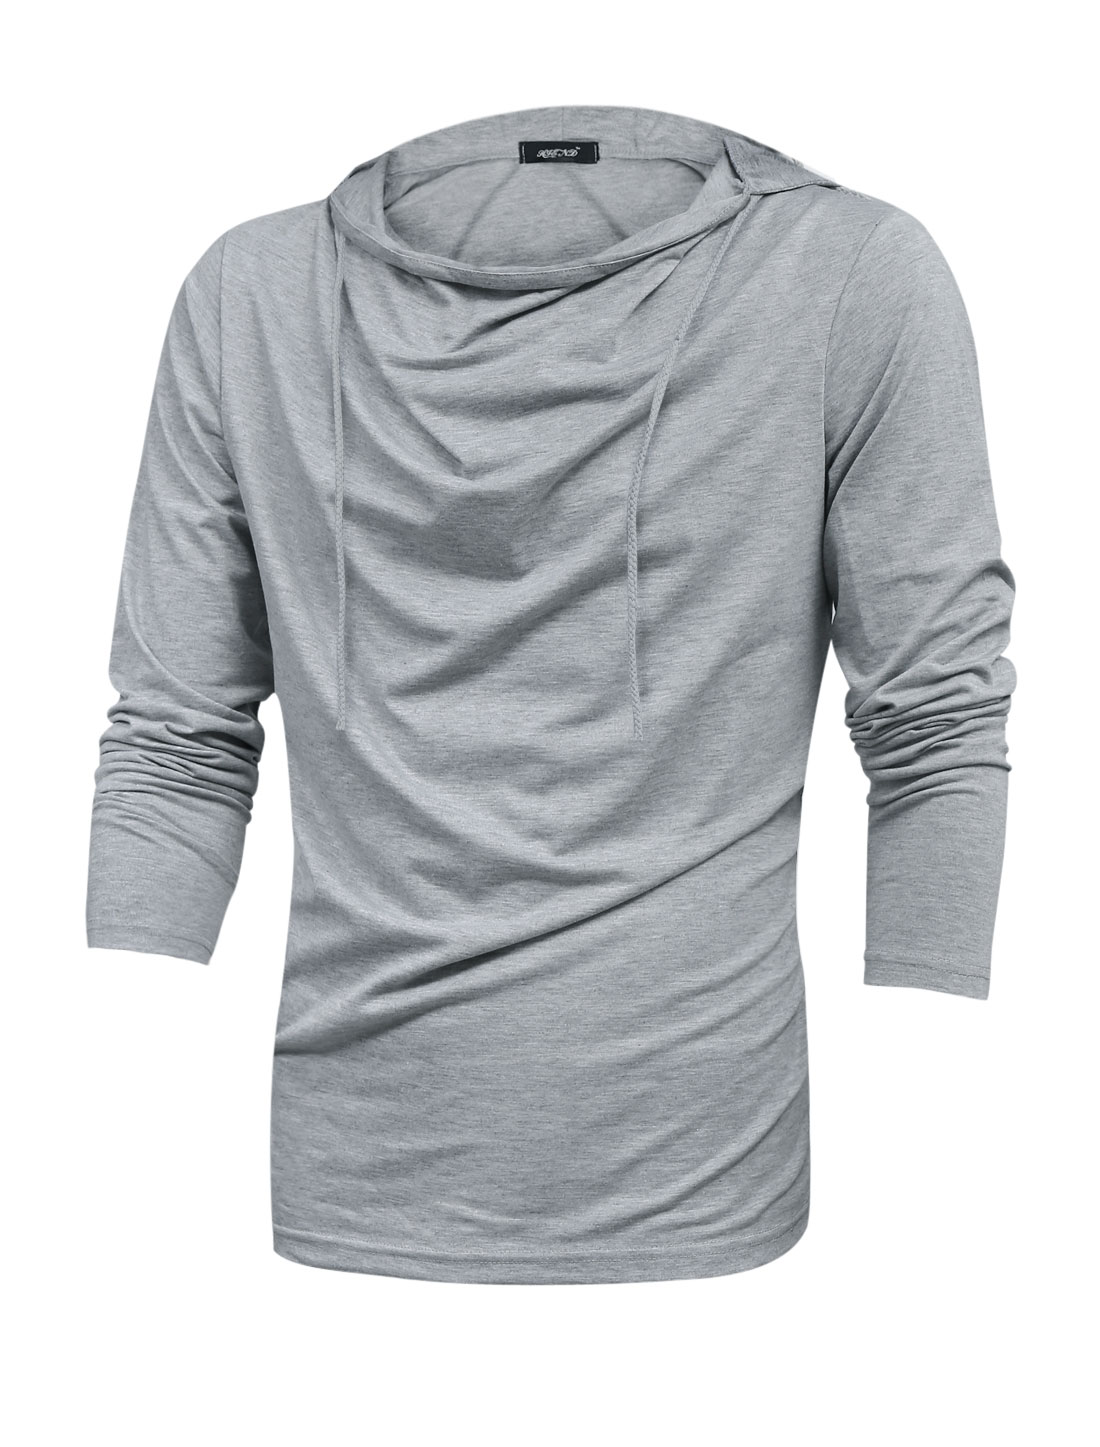 Men Cowl Neck Drawstring Hooded Casual Sweatshirt Light Gray M